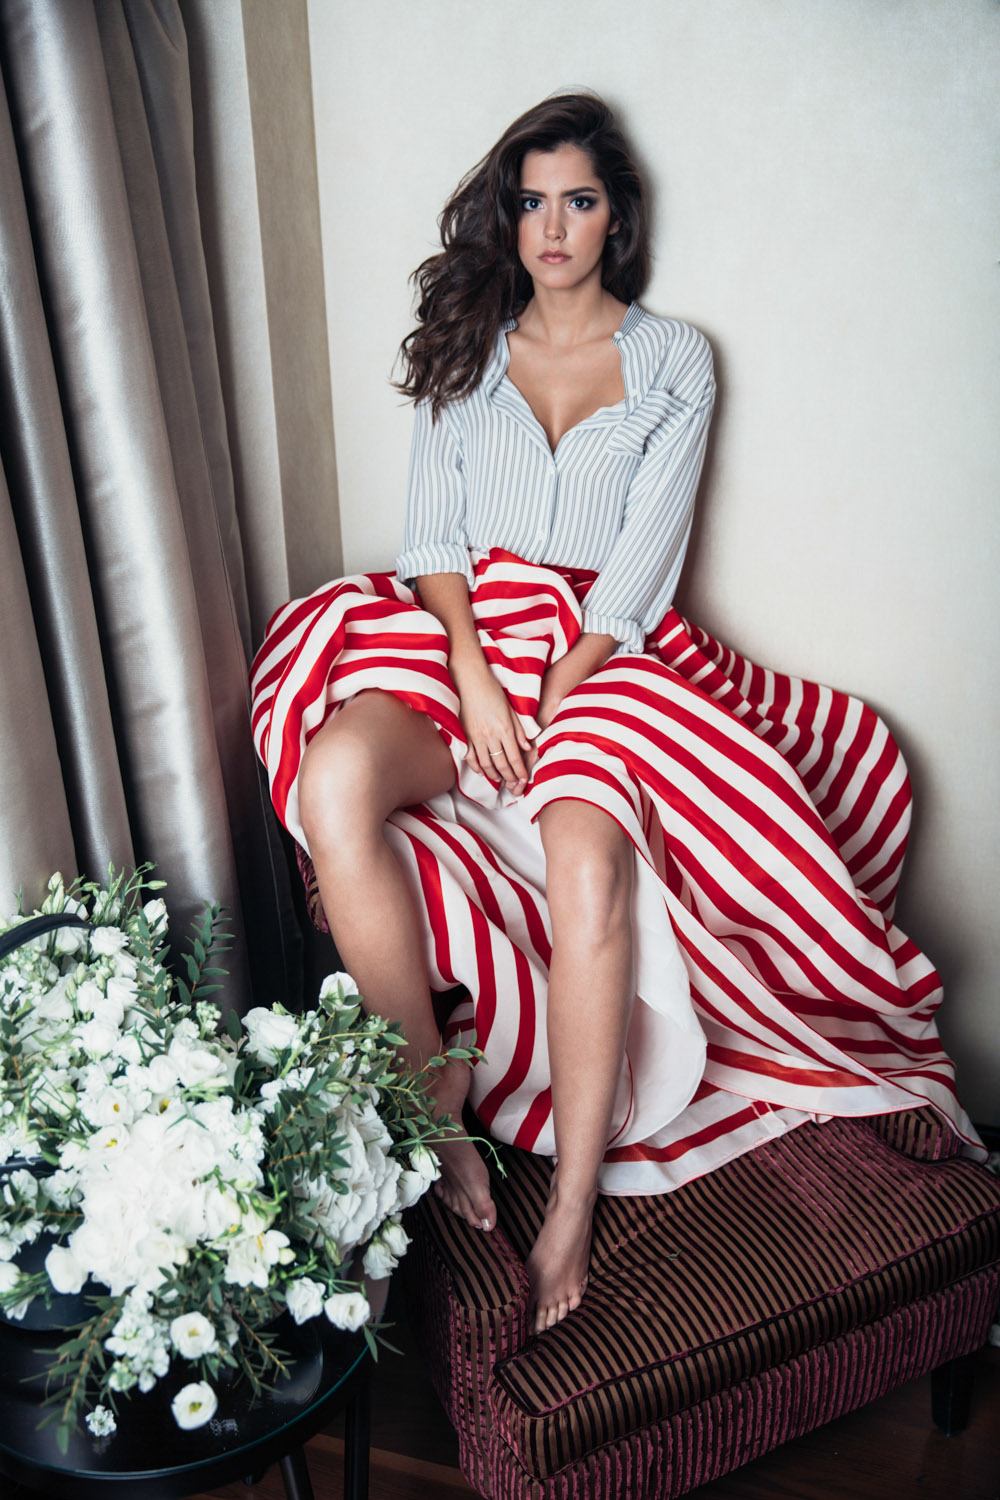 Paulina_Vega_Miss_Universe_2014 2015 photoshoot in kazakhstan 01